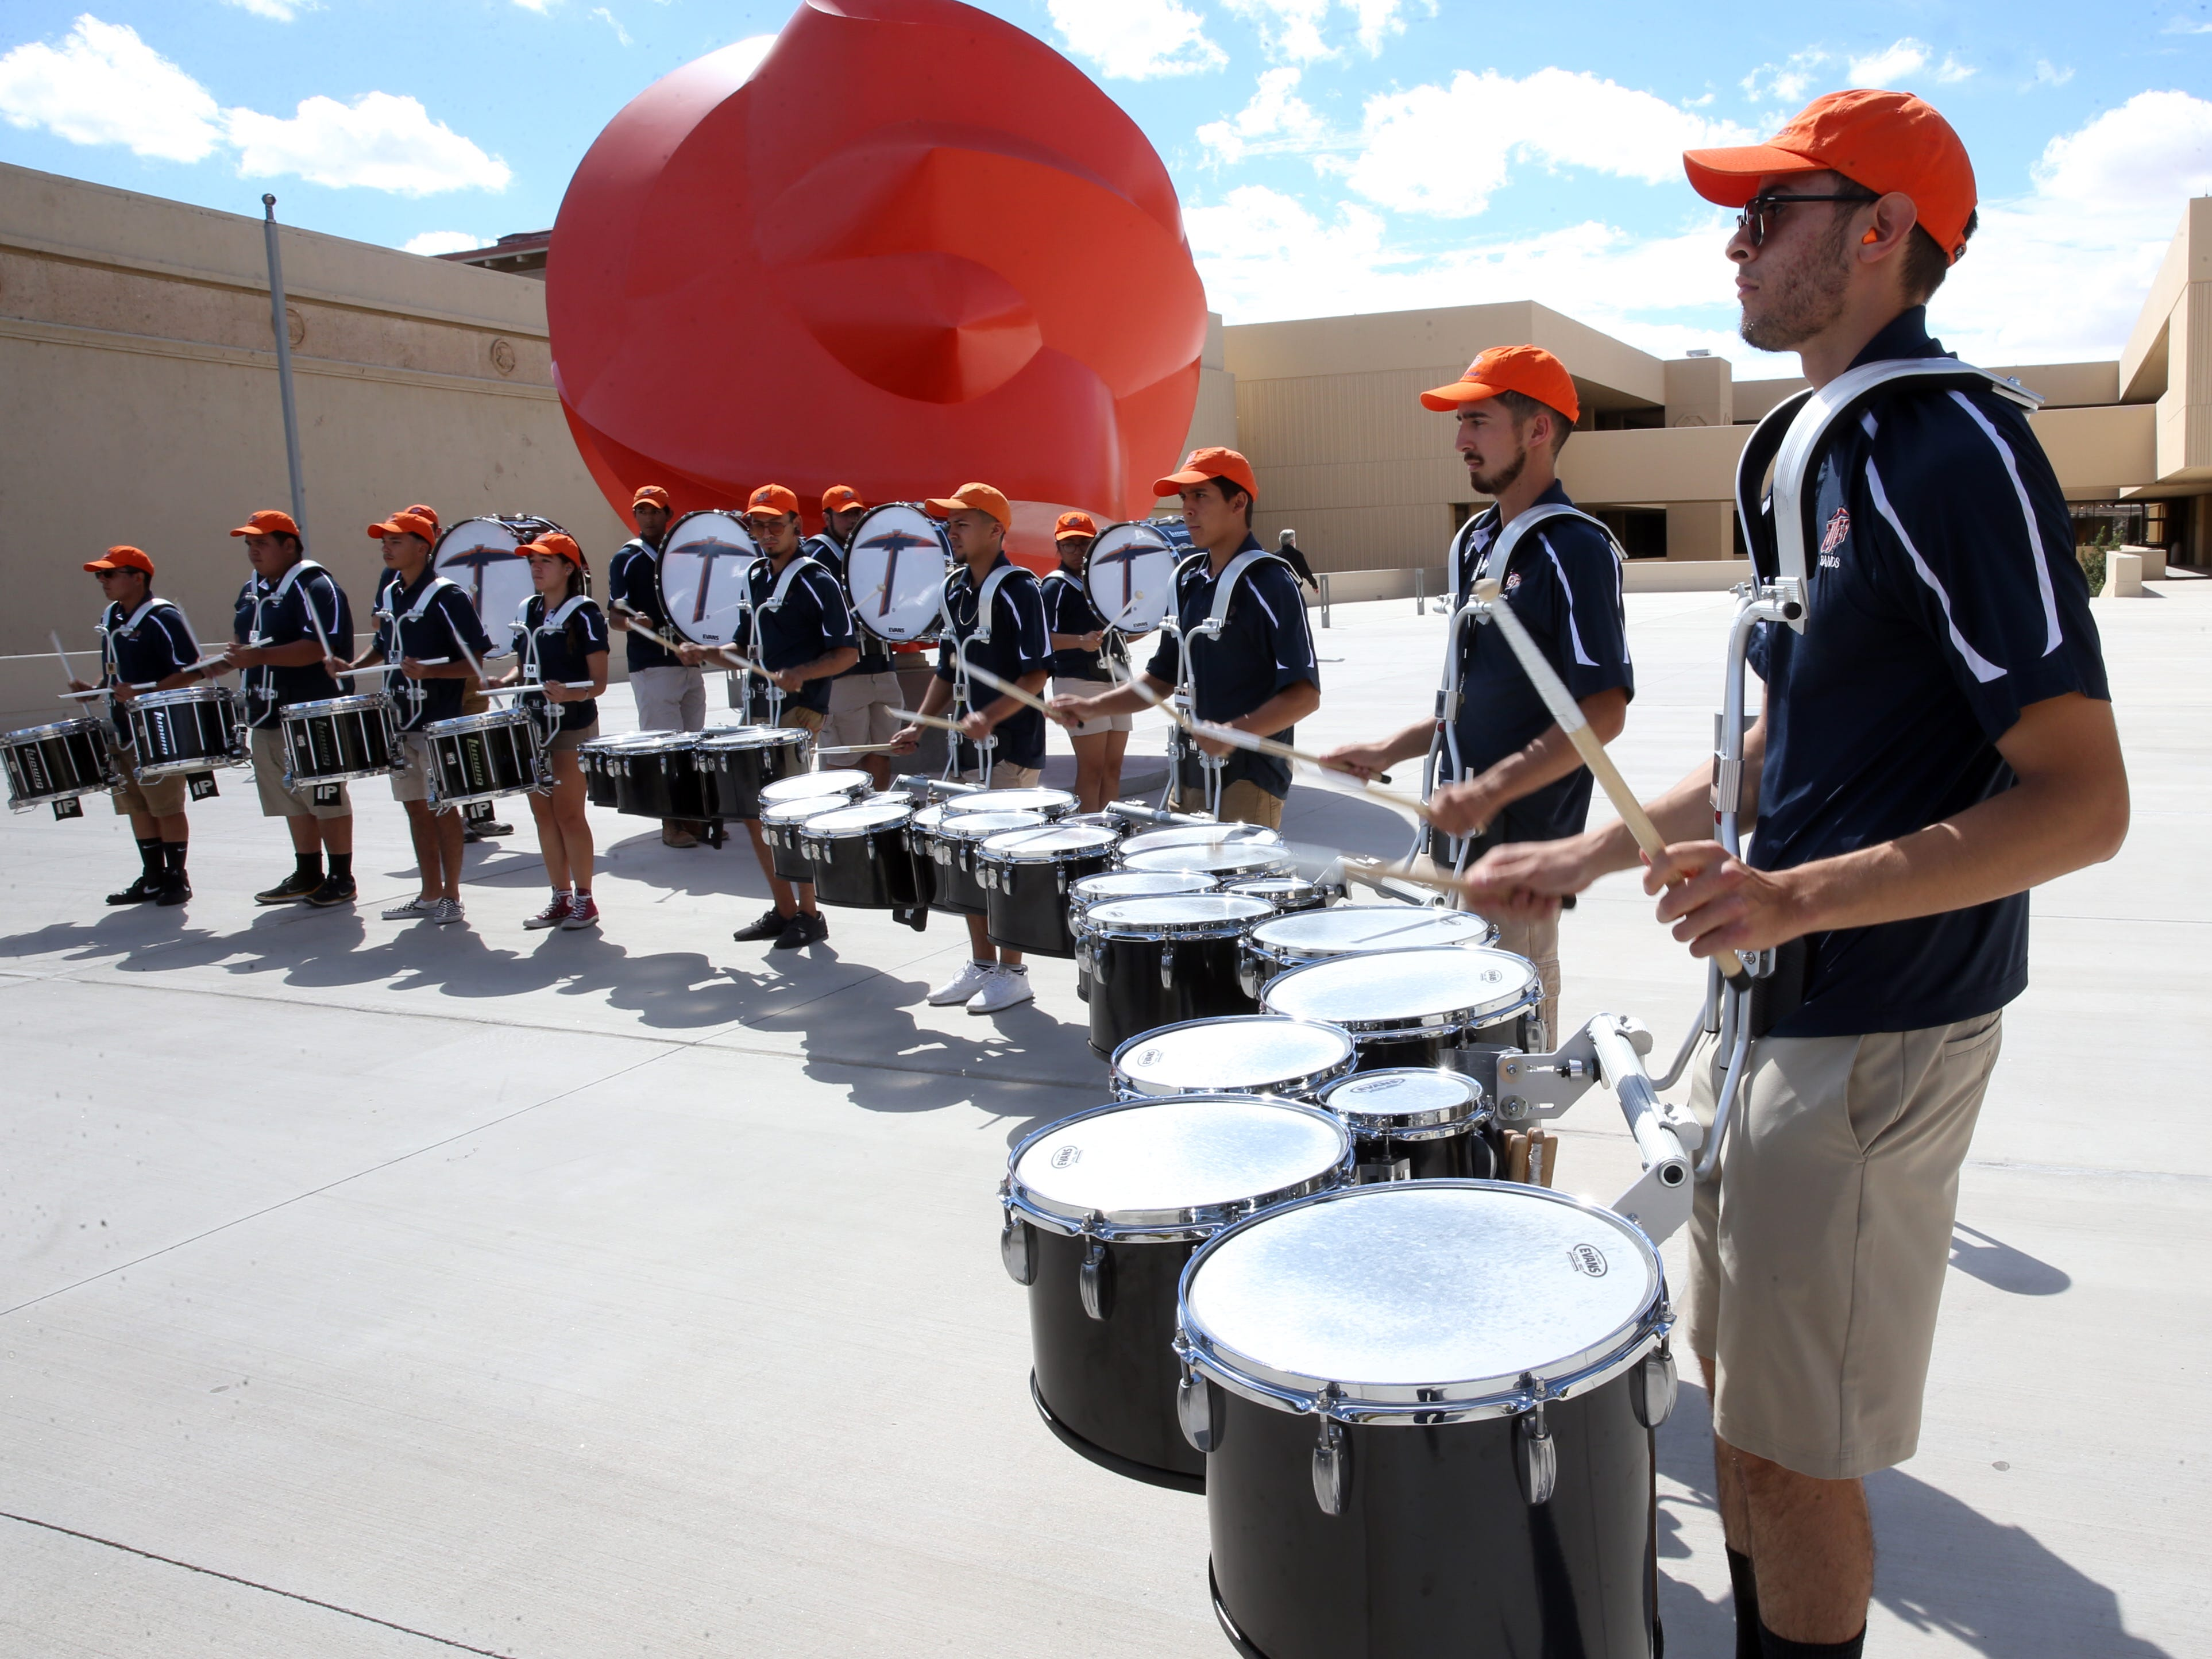 The UTEP drum line plays at the steps of the Fox Fine Arts building on the UTEP campus Thursday during the 2018 Fall Convocation.